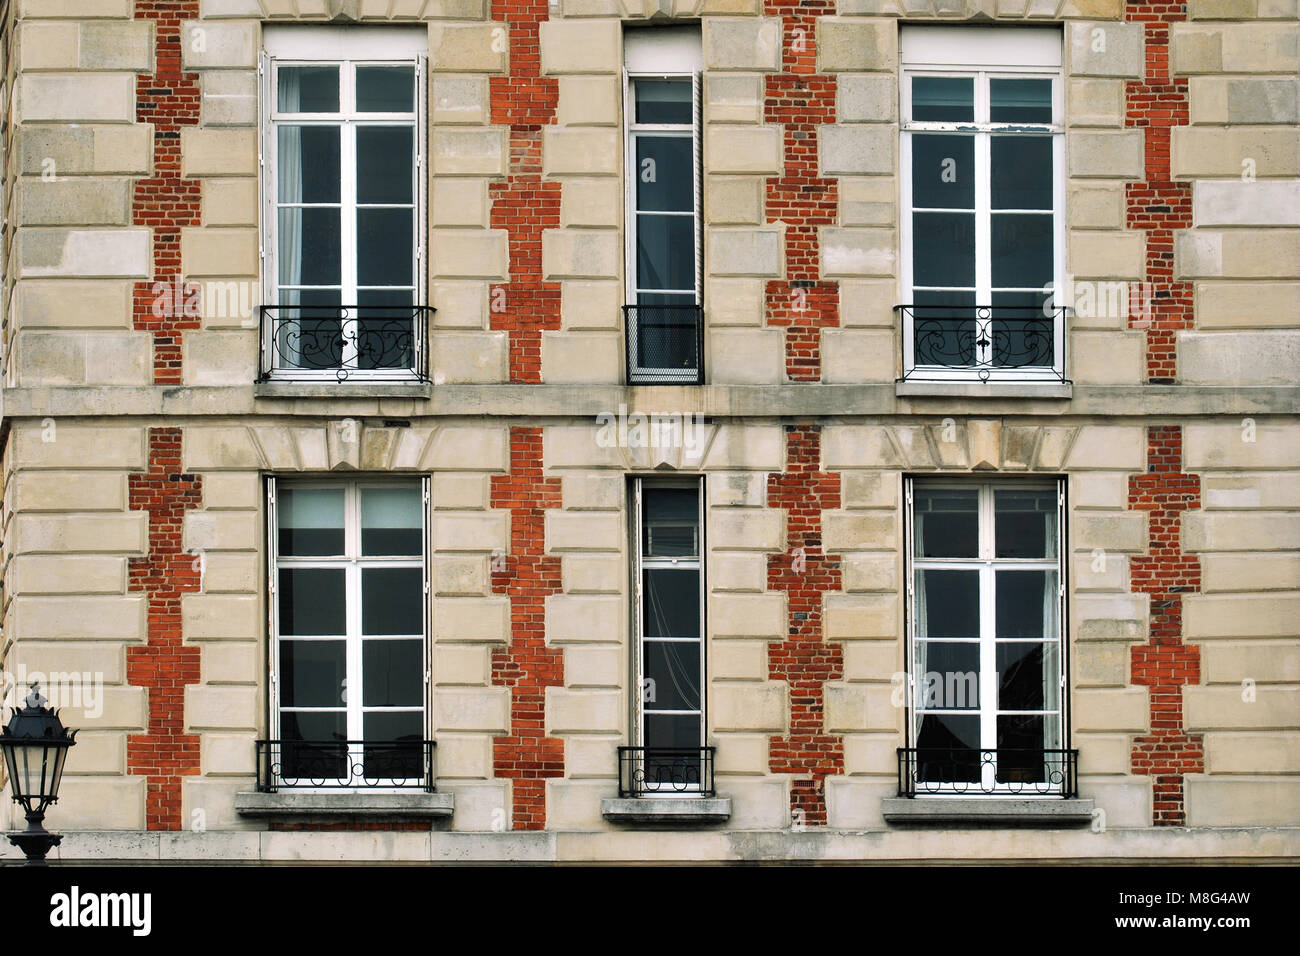 Paris windows against a background of beige walls with red brick spacers and balconies with iron bars. - Stock Image